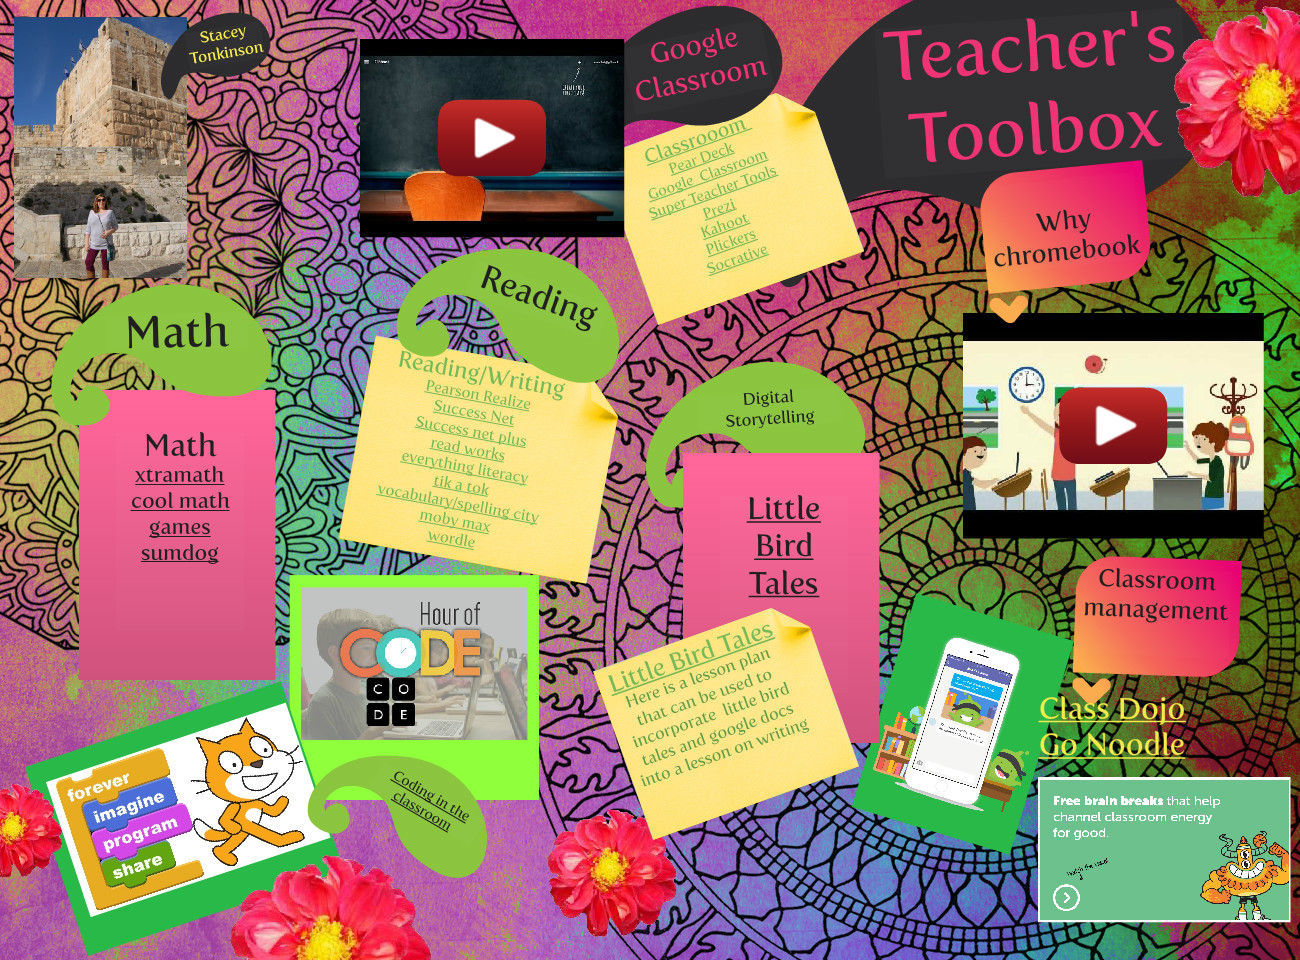 Tonkinson Teacher Toolbox